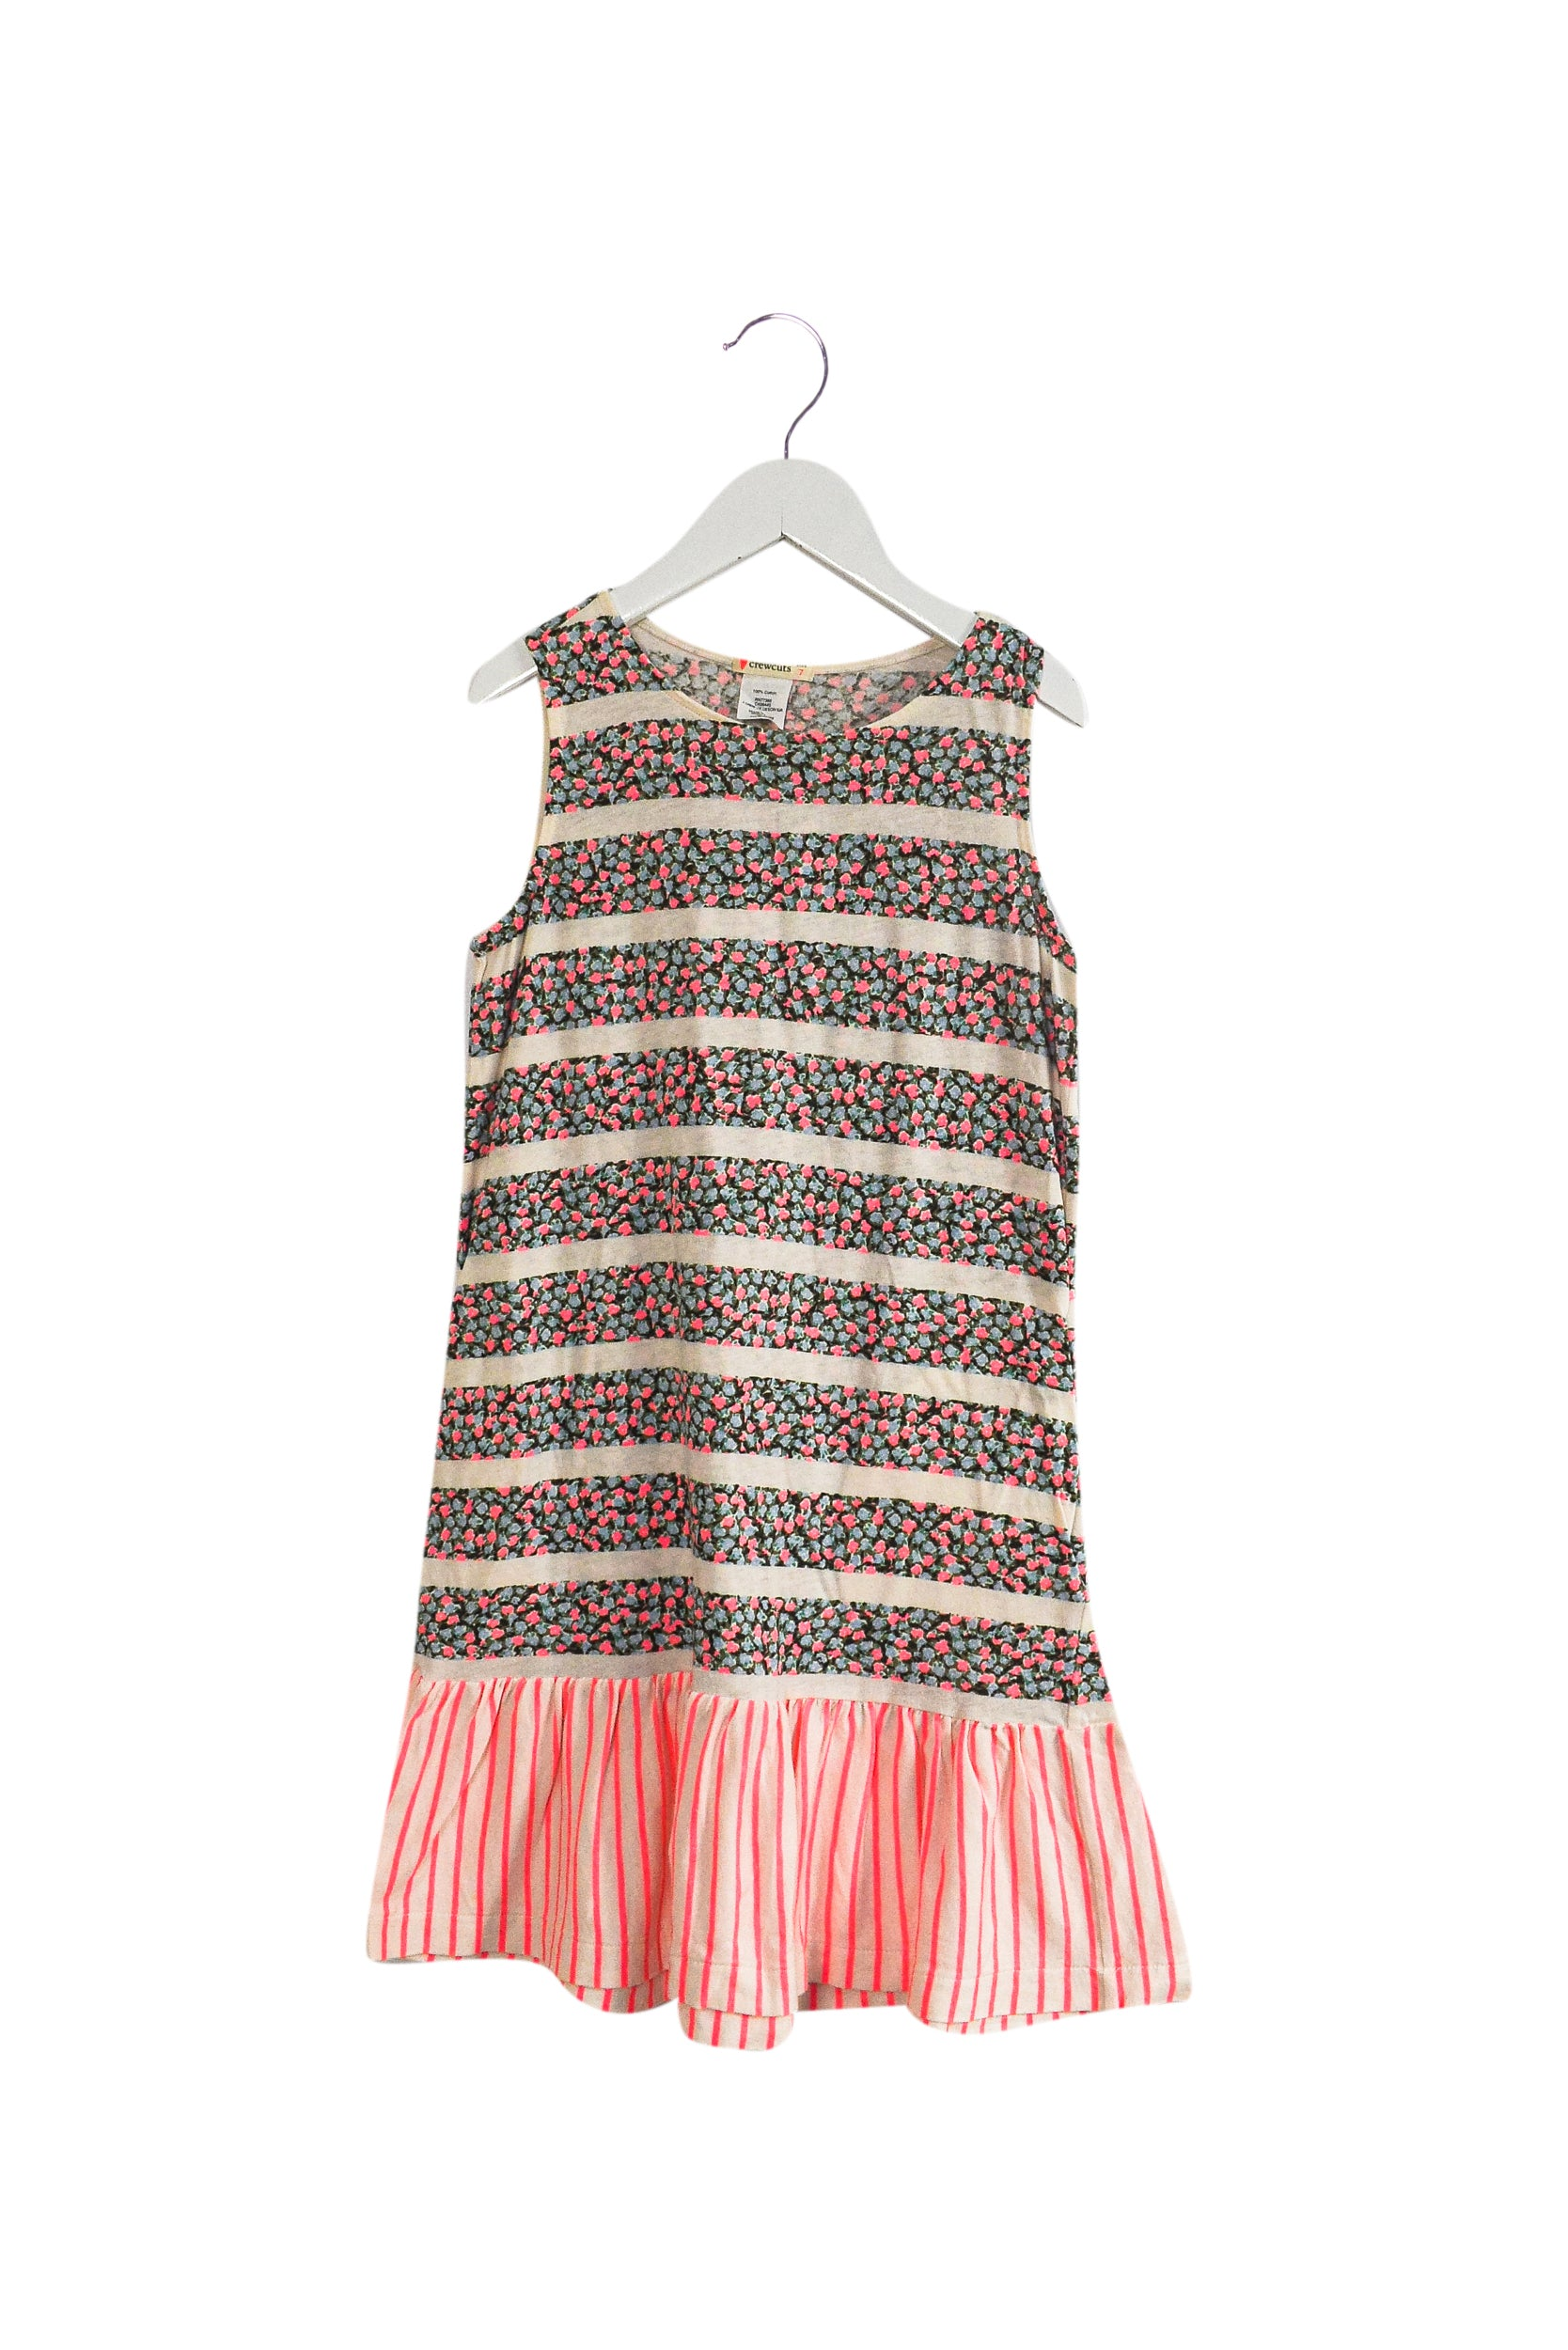 Sleeveless Dress 7Y at Retykle